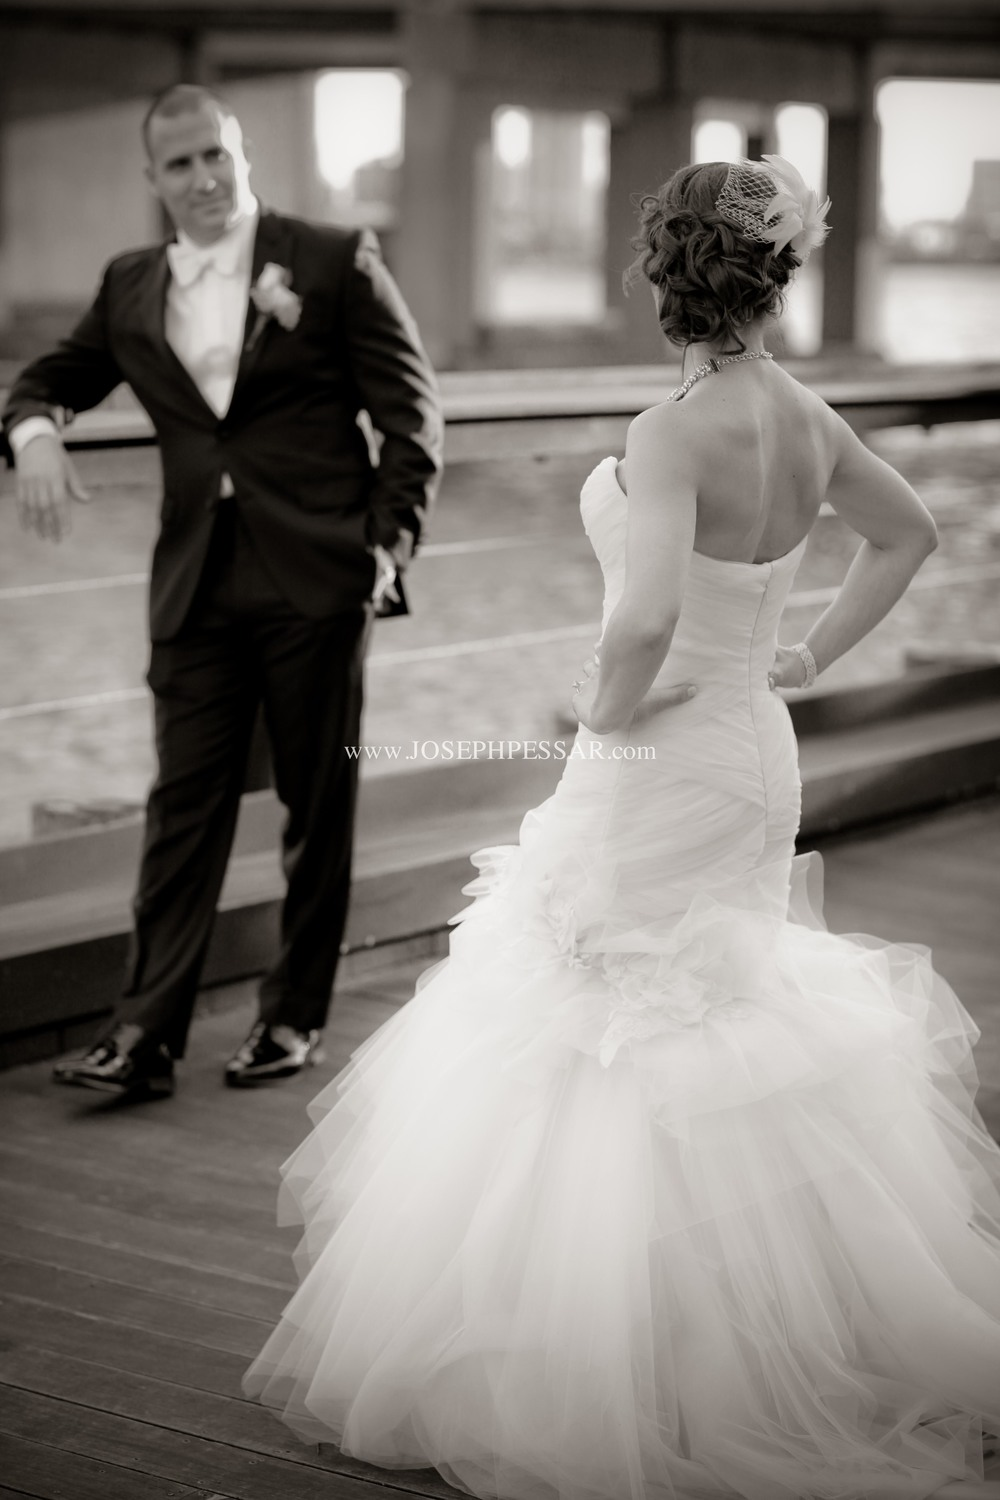 nyc_wedding_photographer0024.jpg